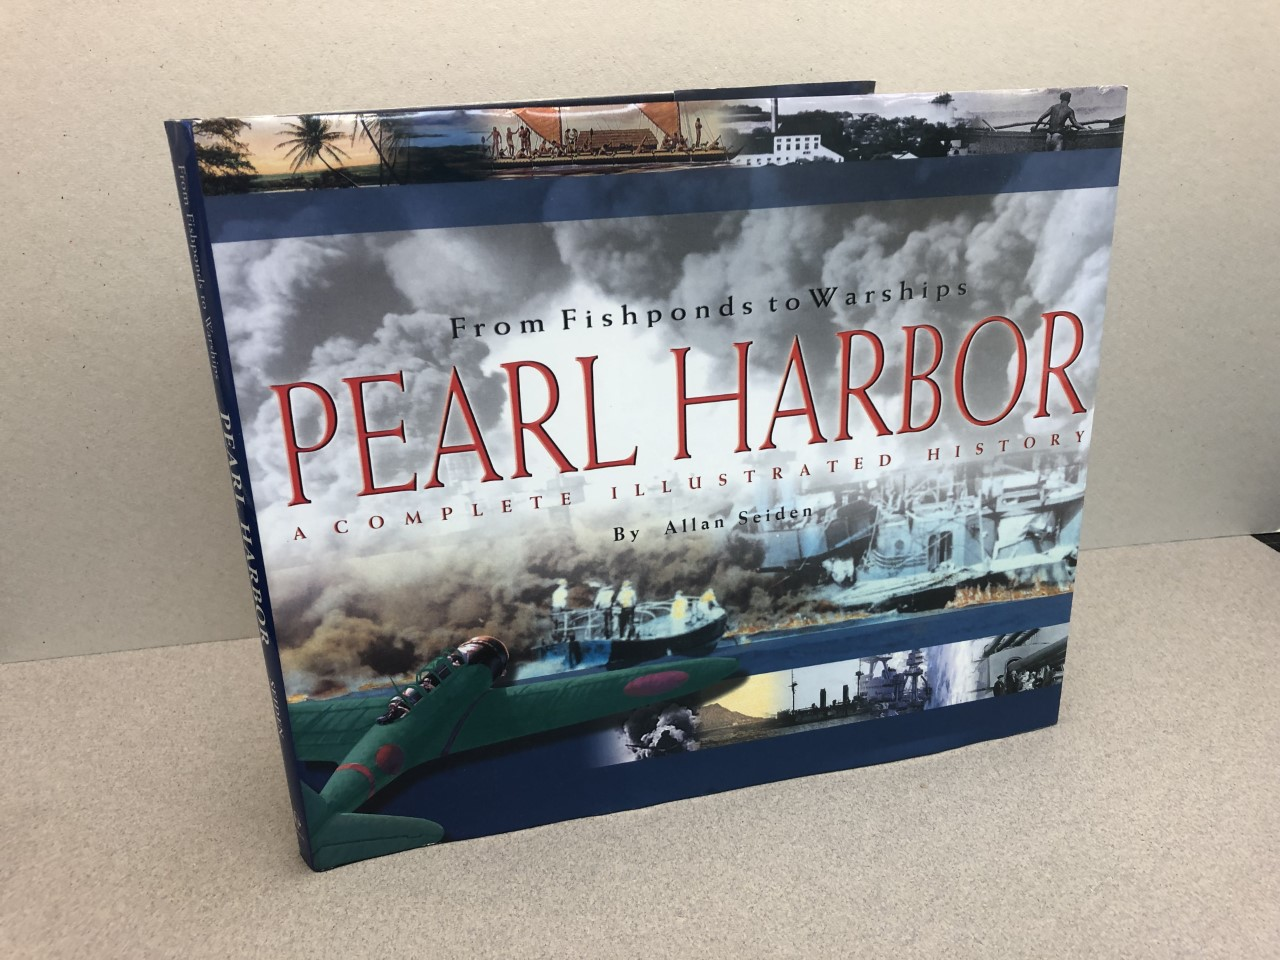 Image for From Fishponds to Warships: PEARL HORBOR --A Complete Illustrated History